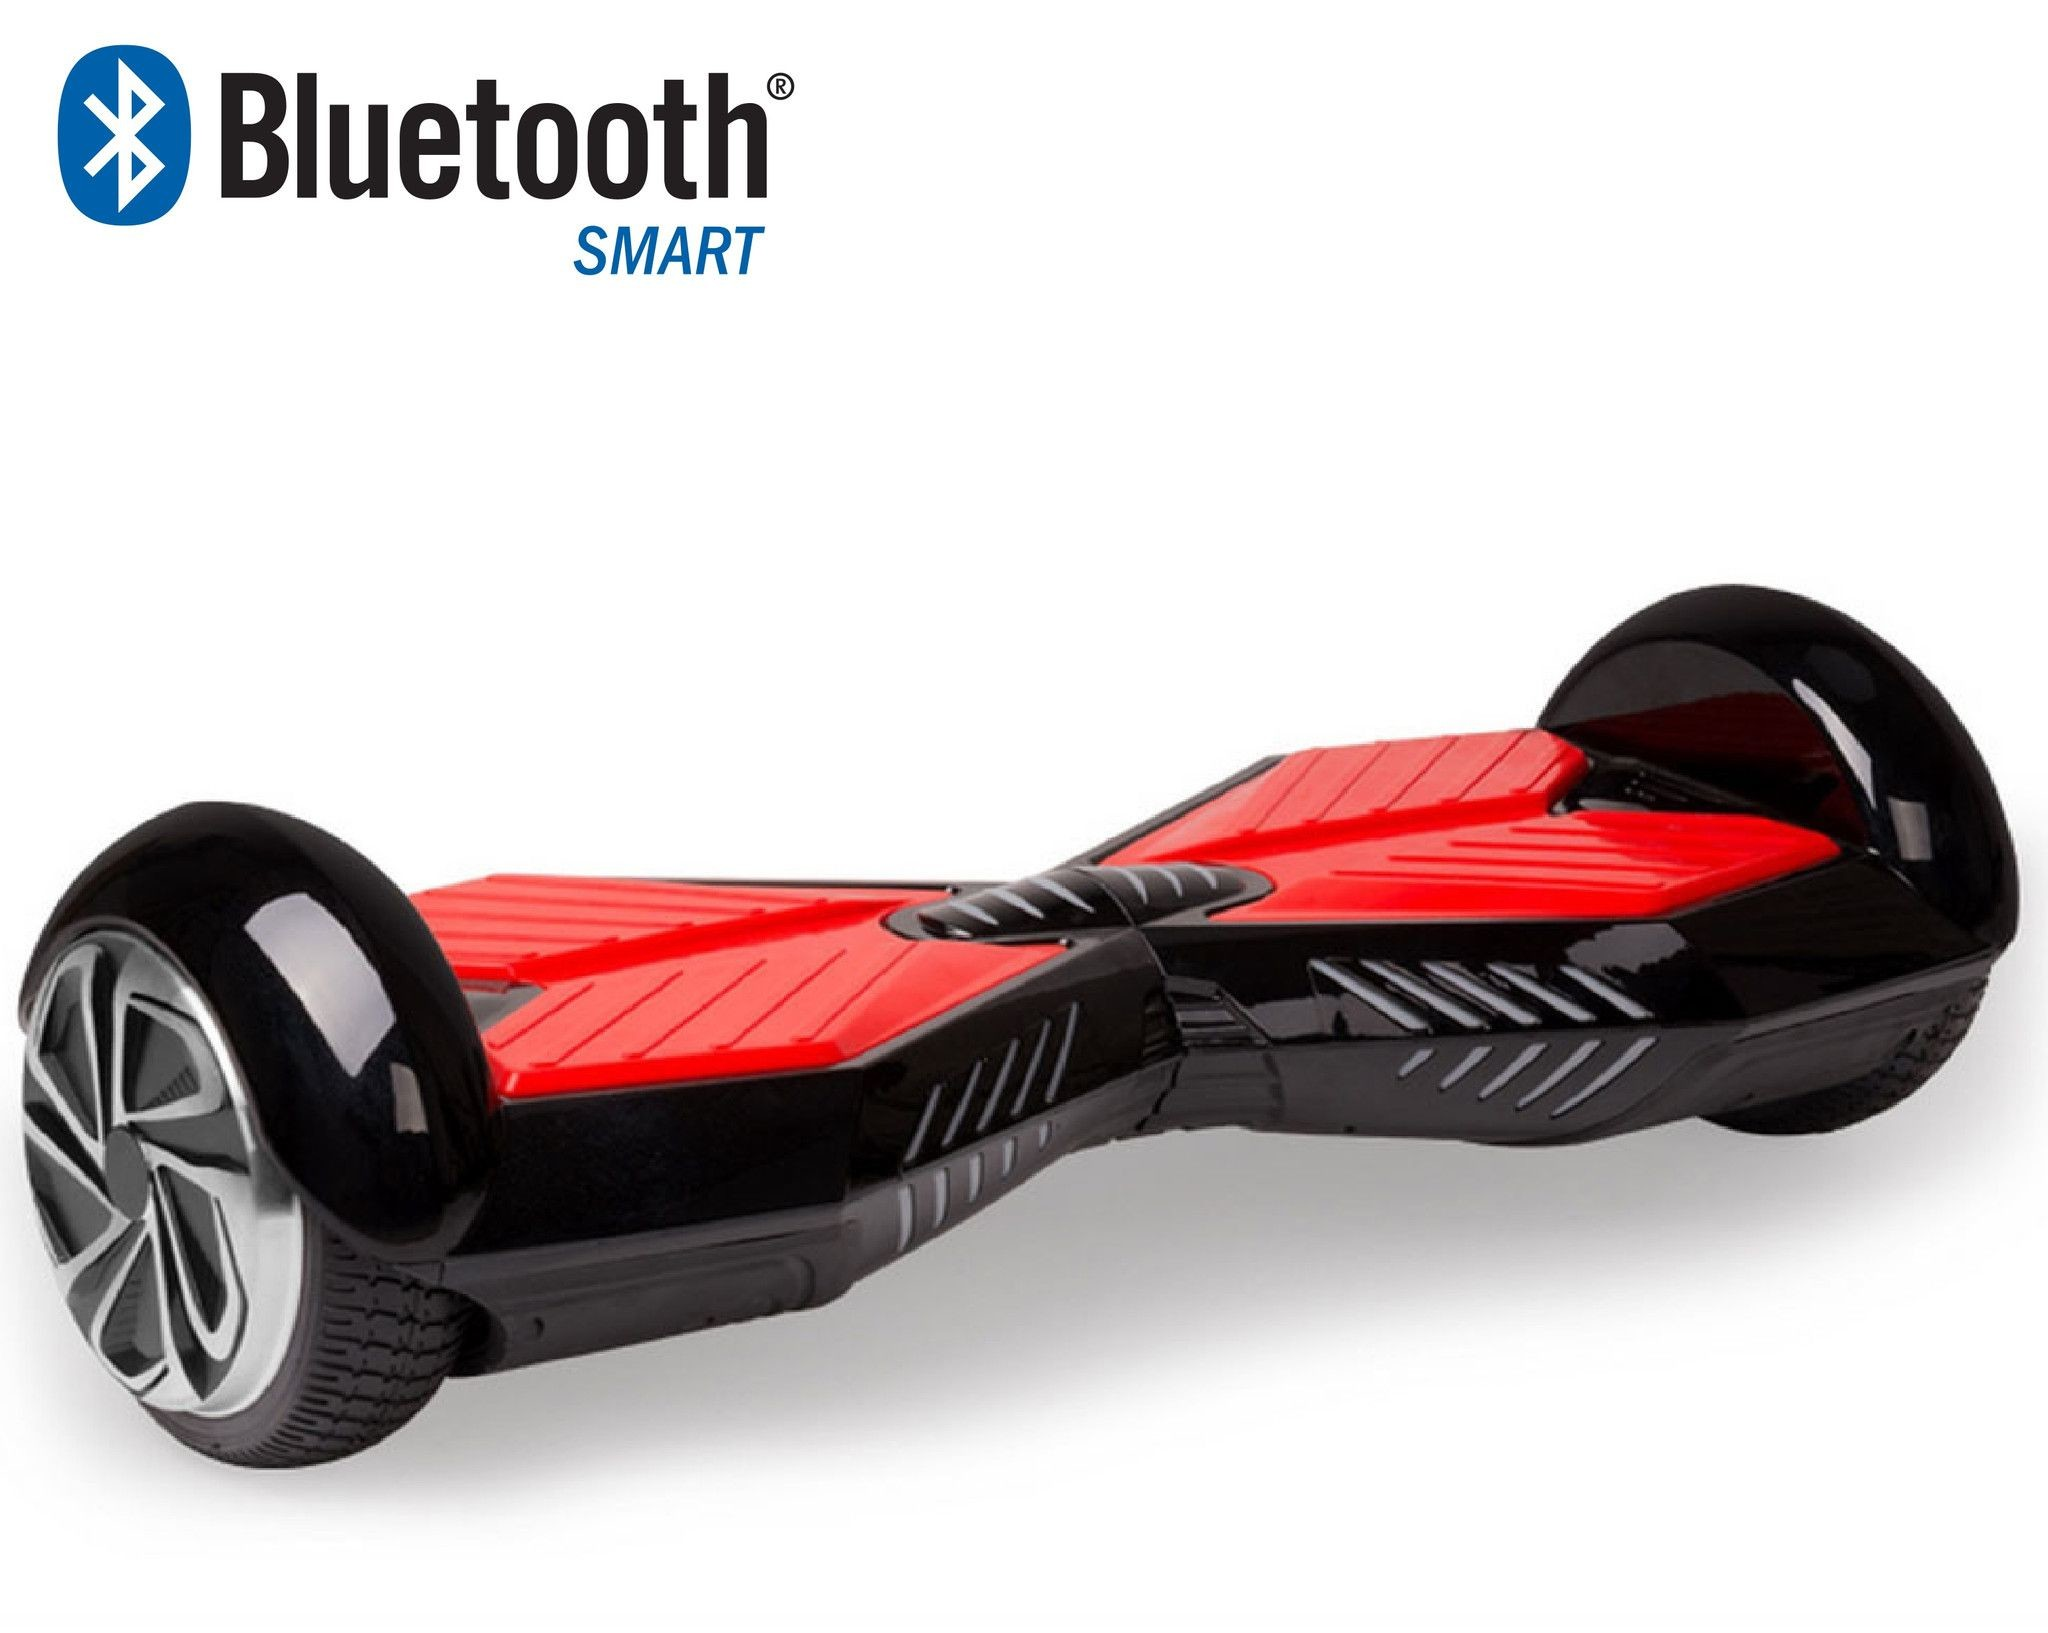 2048x1633 Bluetooth Lamborghini Hoverboard Black/Red Lifetime Warranty